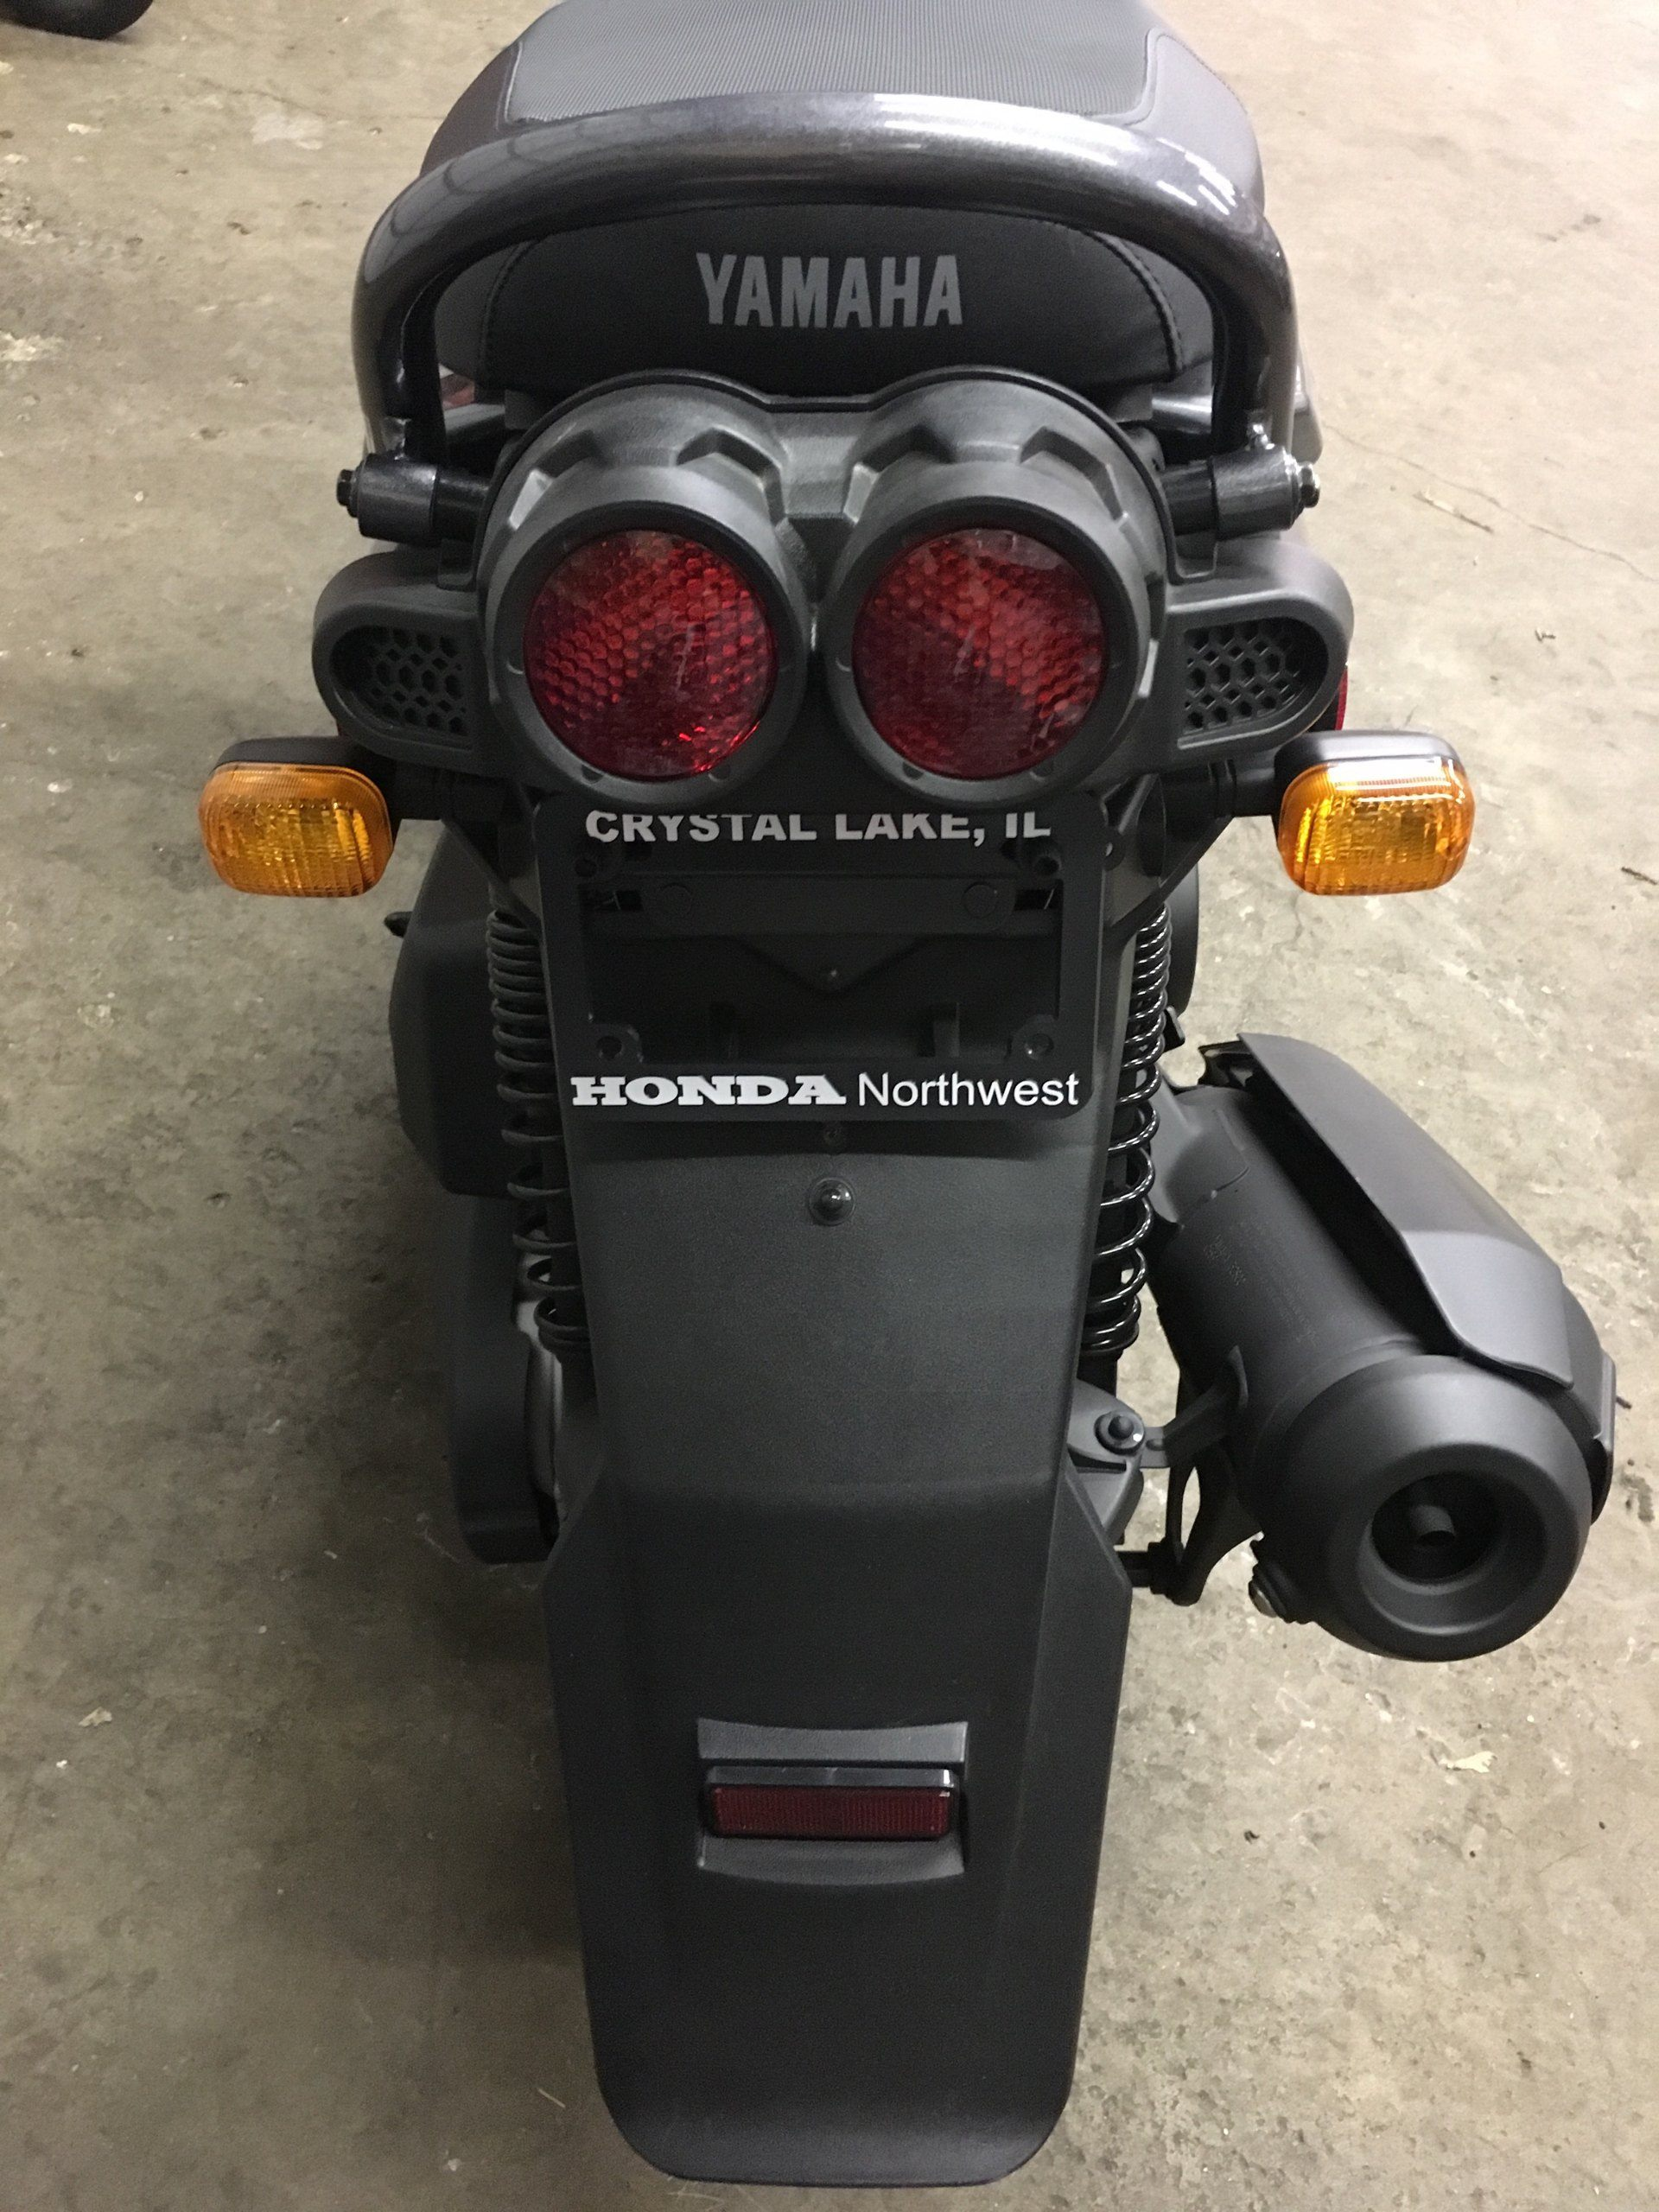 2015 Yamaha Zuma 125 in Crystal Lake, Illinois